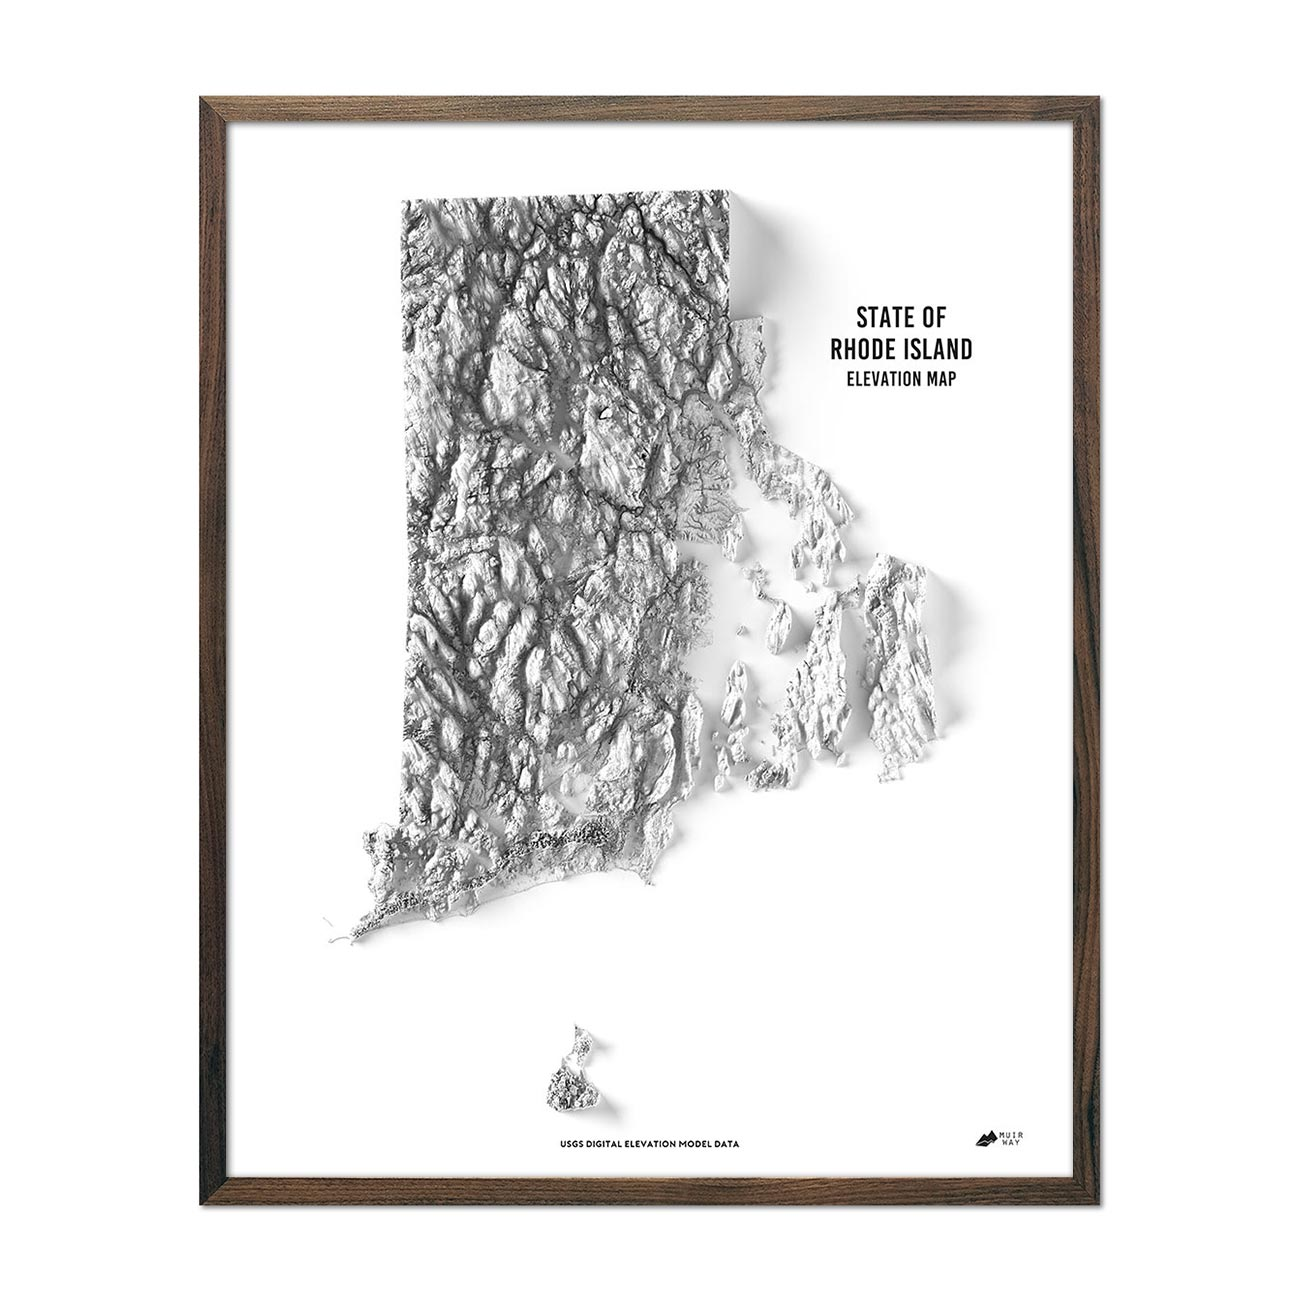 Rhode Island Elevation Map